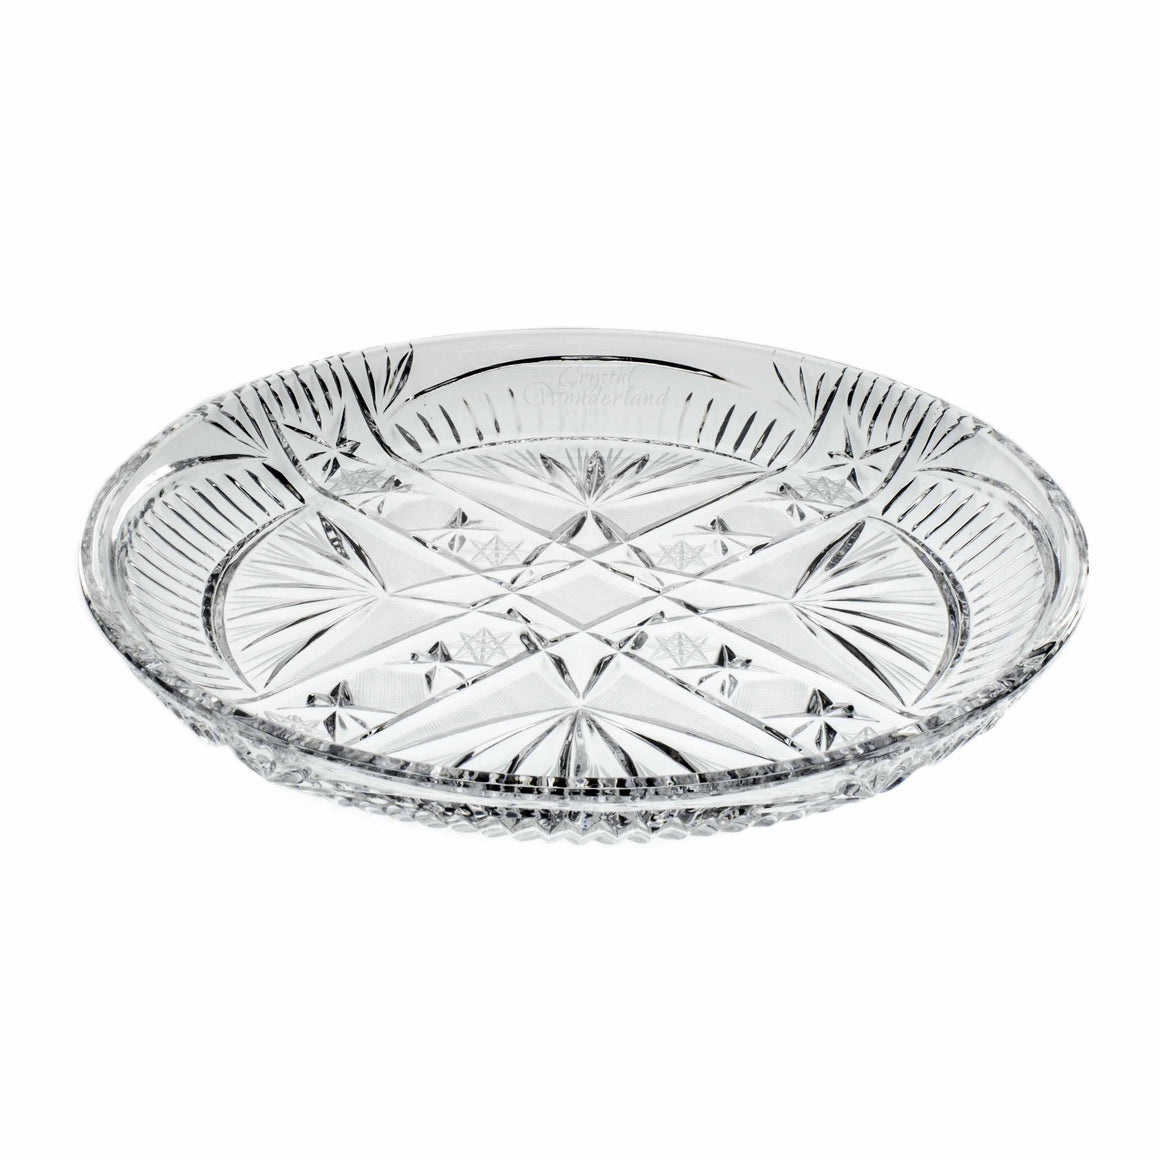 Crystal Serving Plate - The Crystal Wonderland - 1